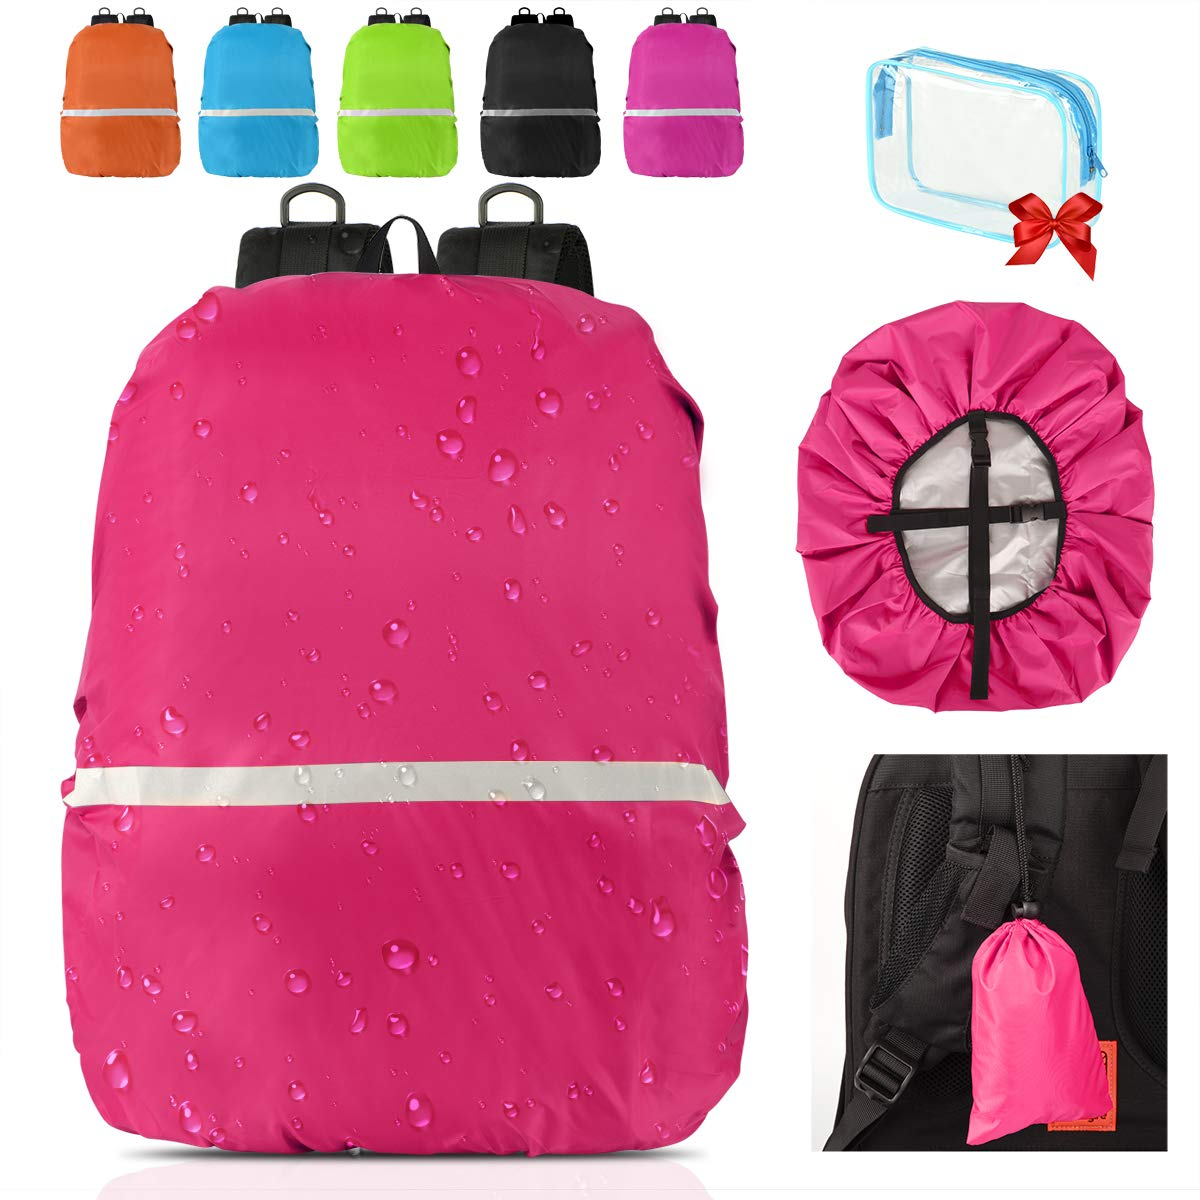 Qerhod Waterproof Backpack Rain Cover(15-70L) with Reflective Strip,Perfect for Hiking Backpack,Travel Backpack,Camping Backpack,Business Bag,etc.-Includes 2 Carry Bag